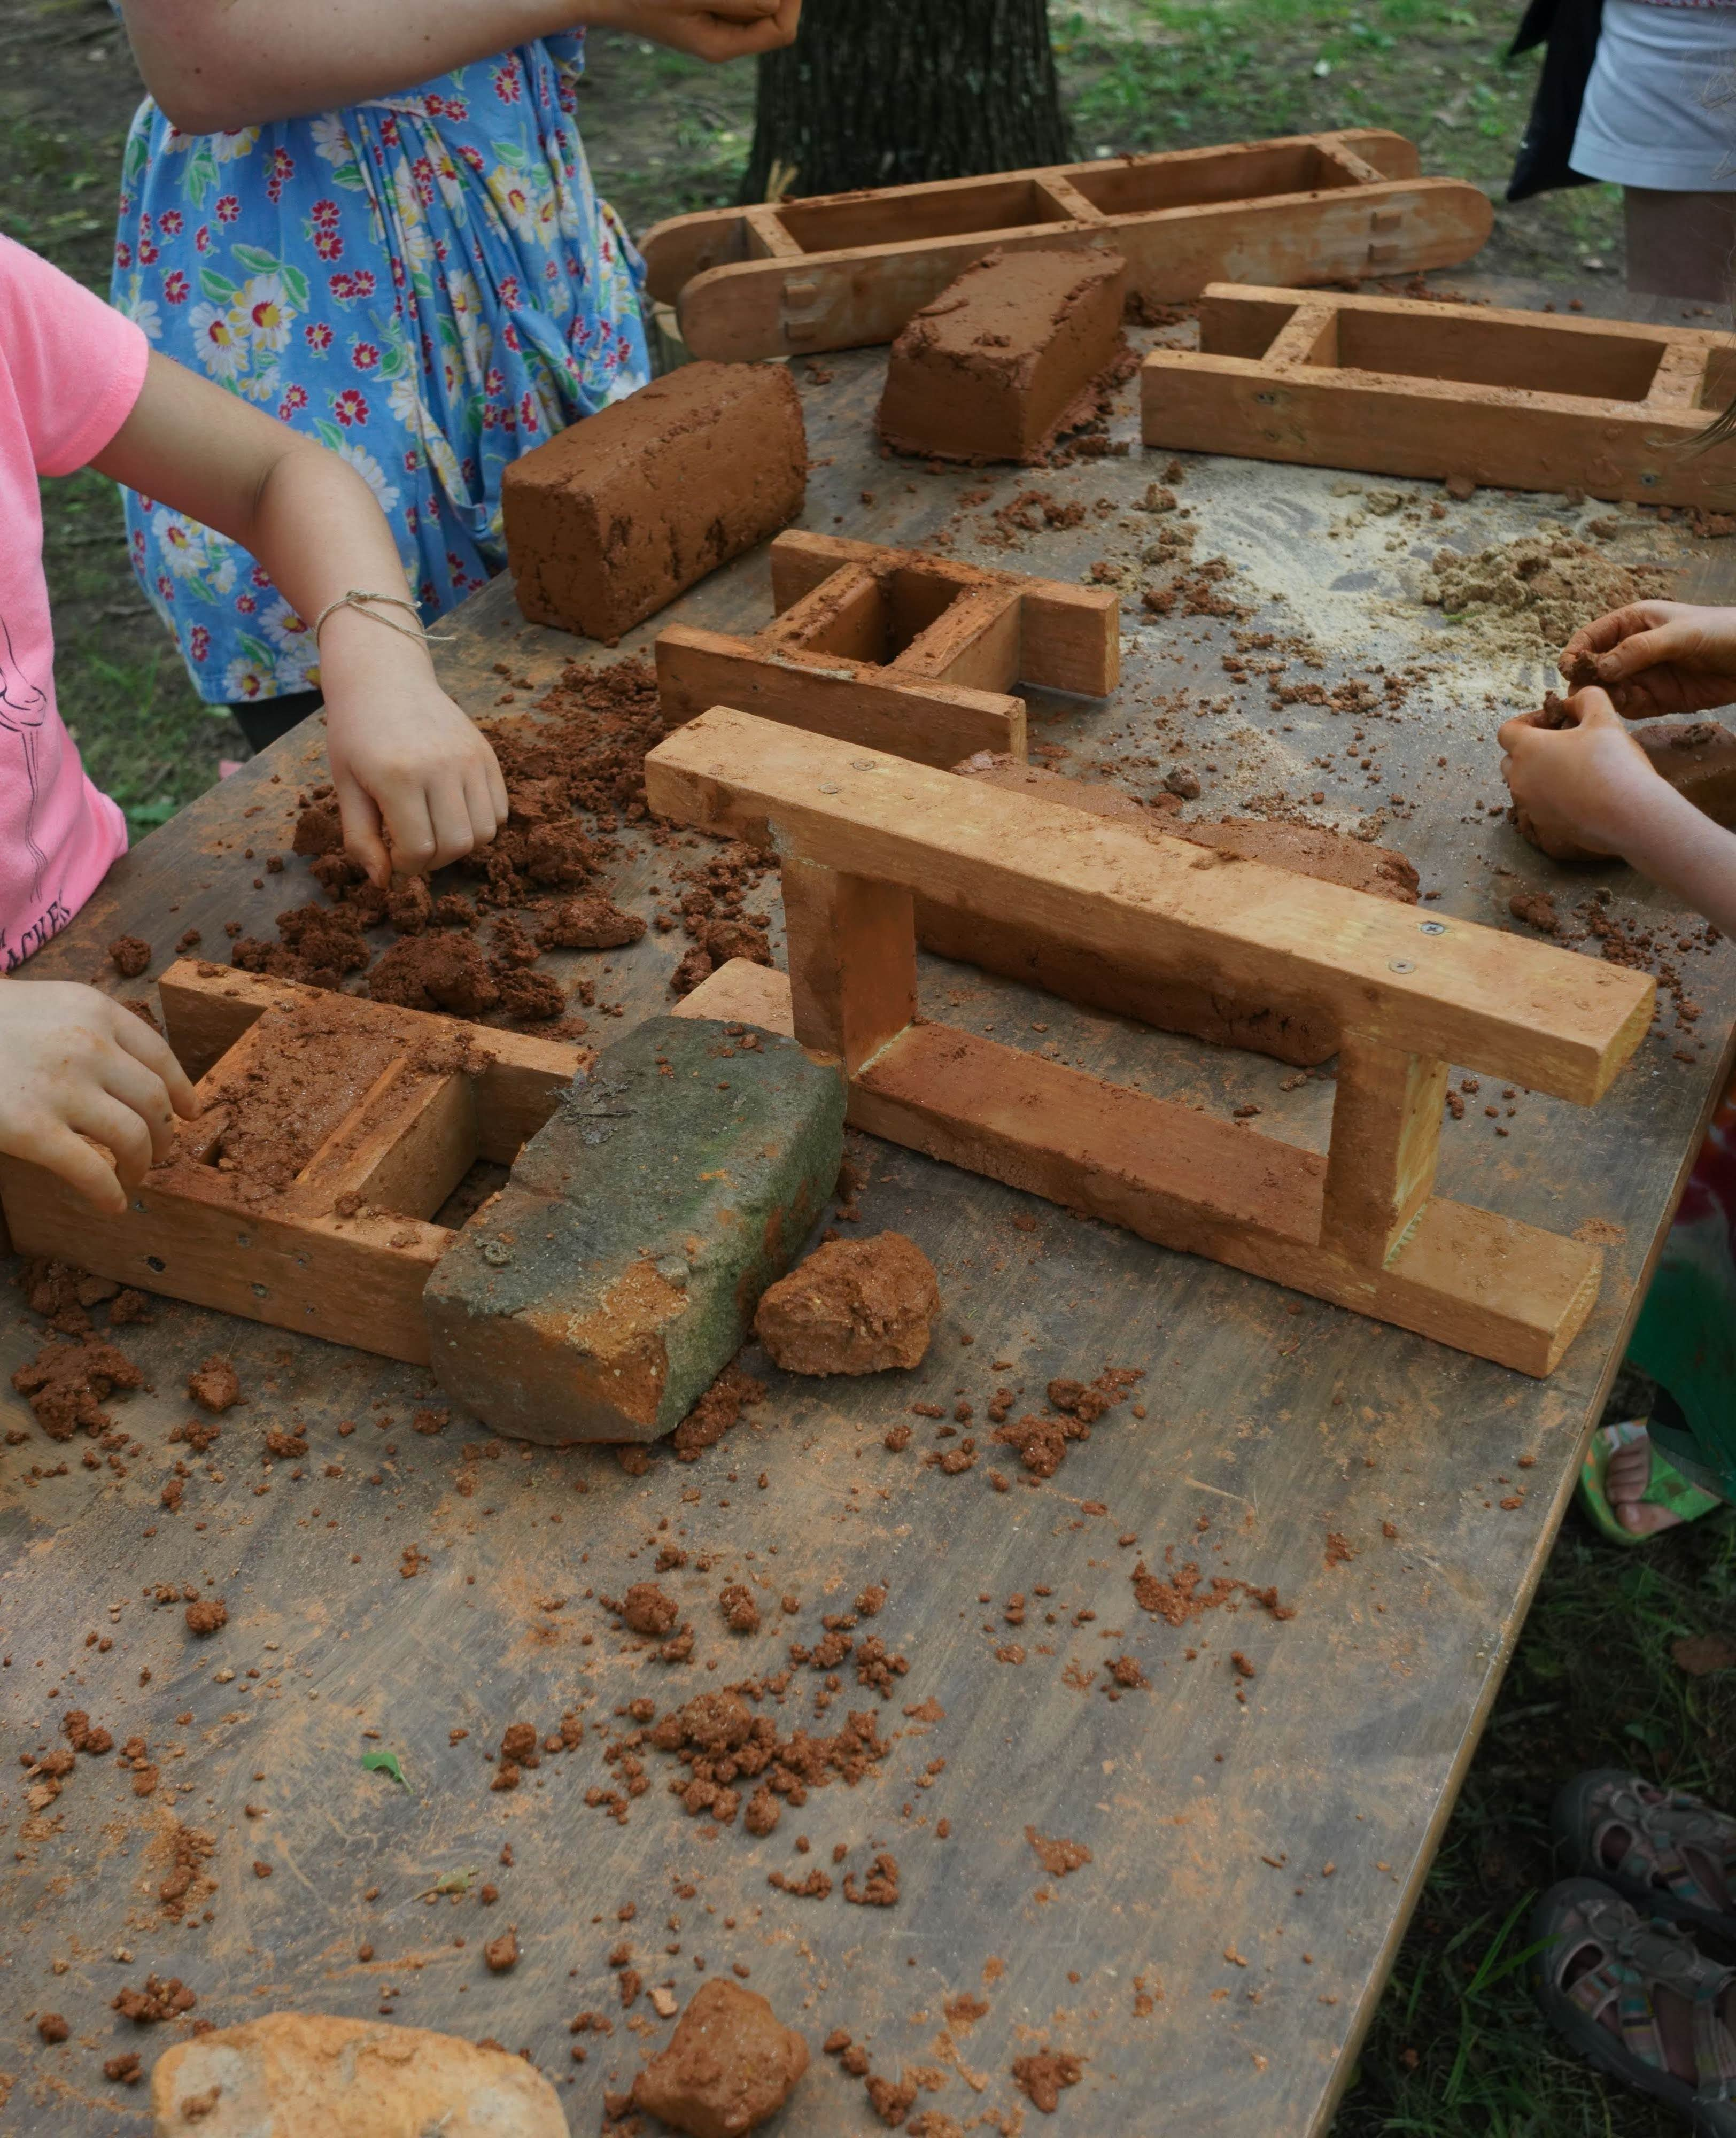 The Juneteenth event at Stagville included educational activities such as brick making in the Horton Grove community.